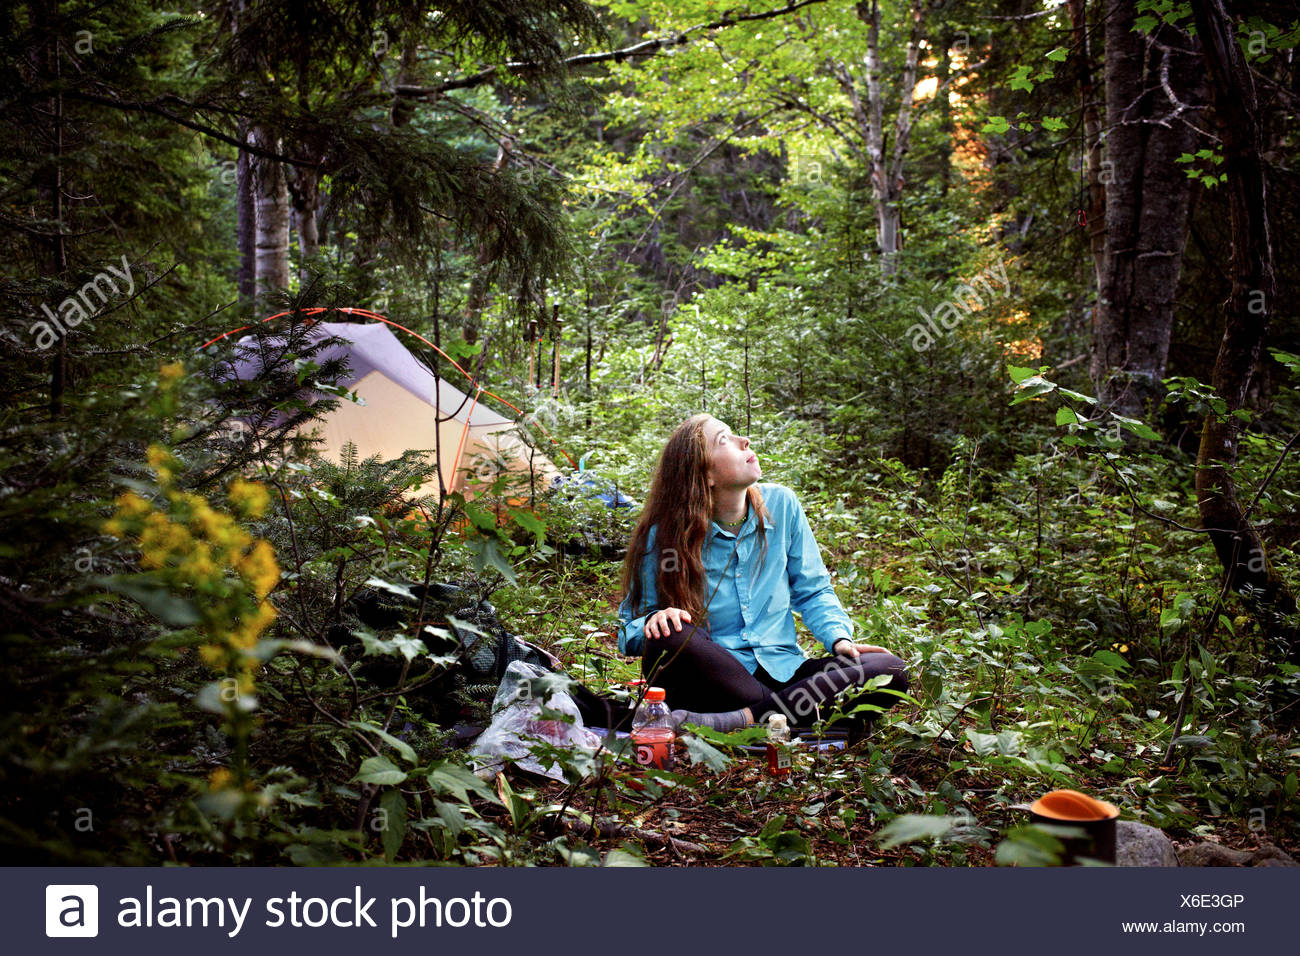 A hiker eating dinner pauses to watch birds in the trees above. - Stock Image